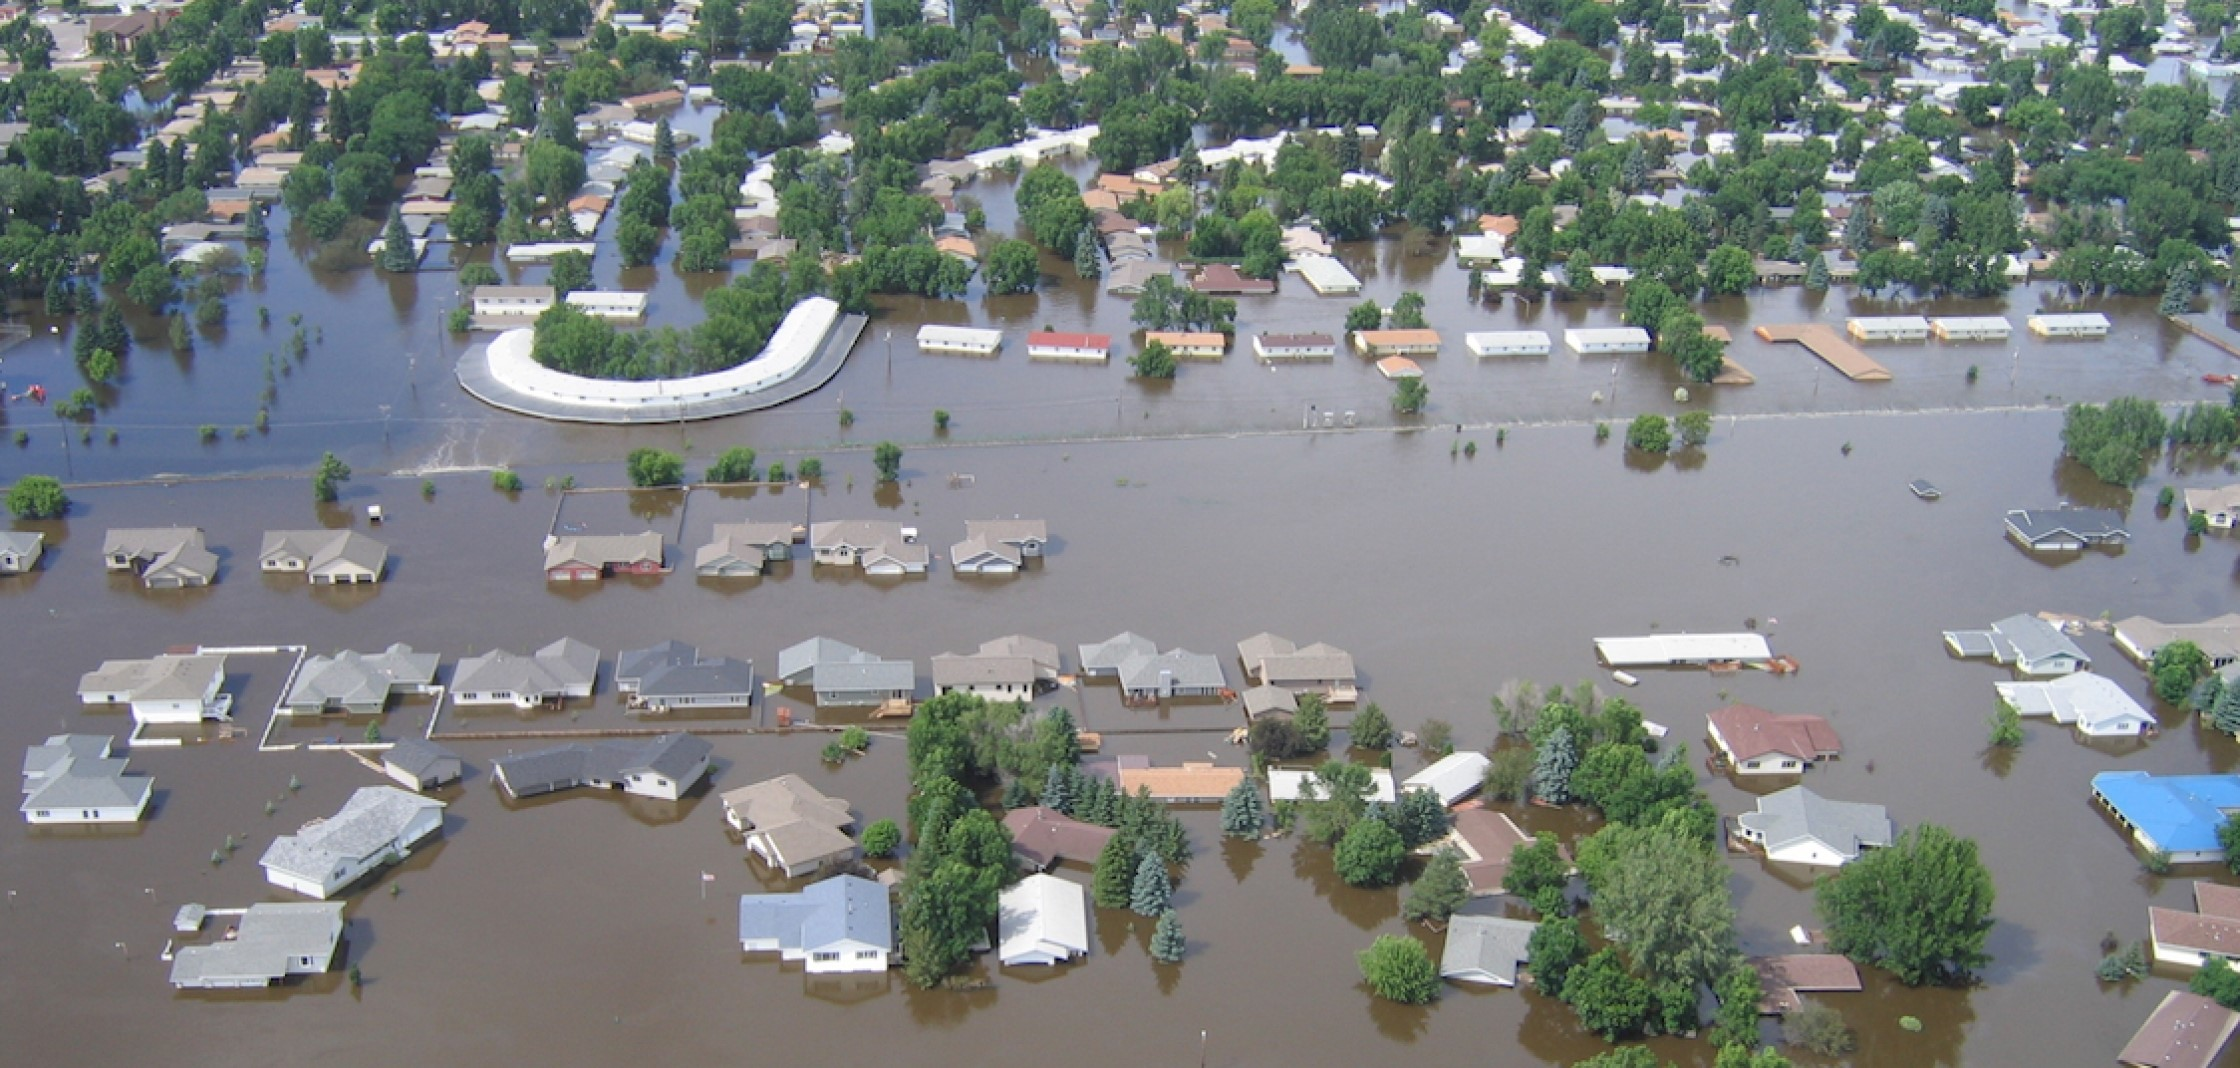 The US National Oceanic and Atmospheric Administration is urging communities in northern North Dakota to prepare for moderate-to-major flooding along the Souris River. The last flood, pictured here in Minot, took place in 2011. Credit: North Dakota State Water Commission